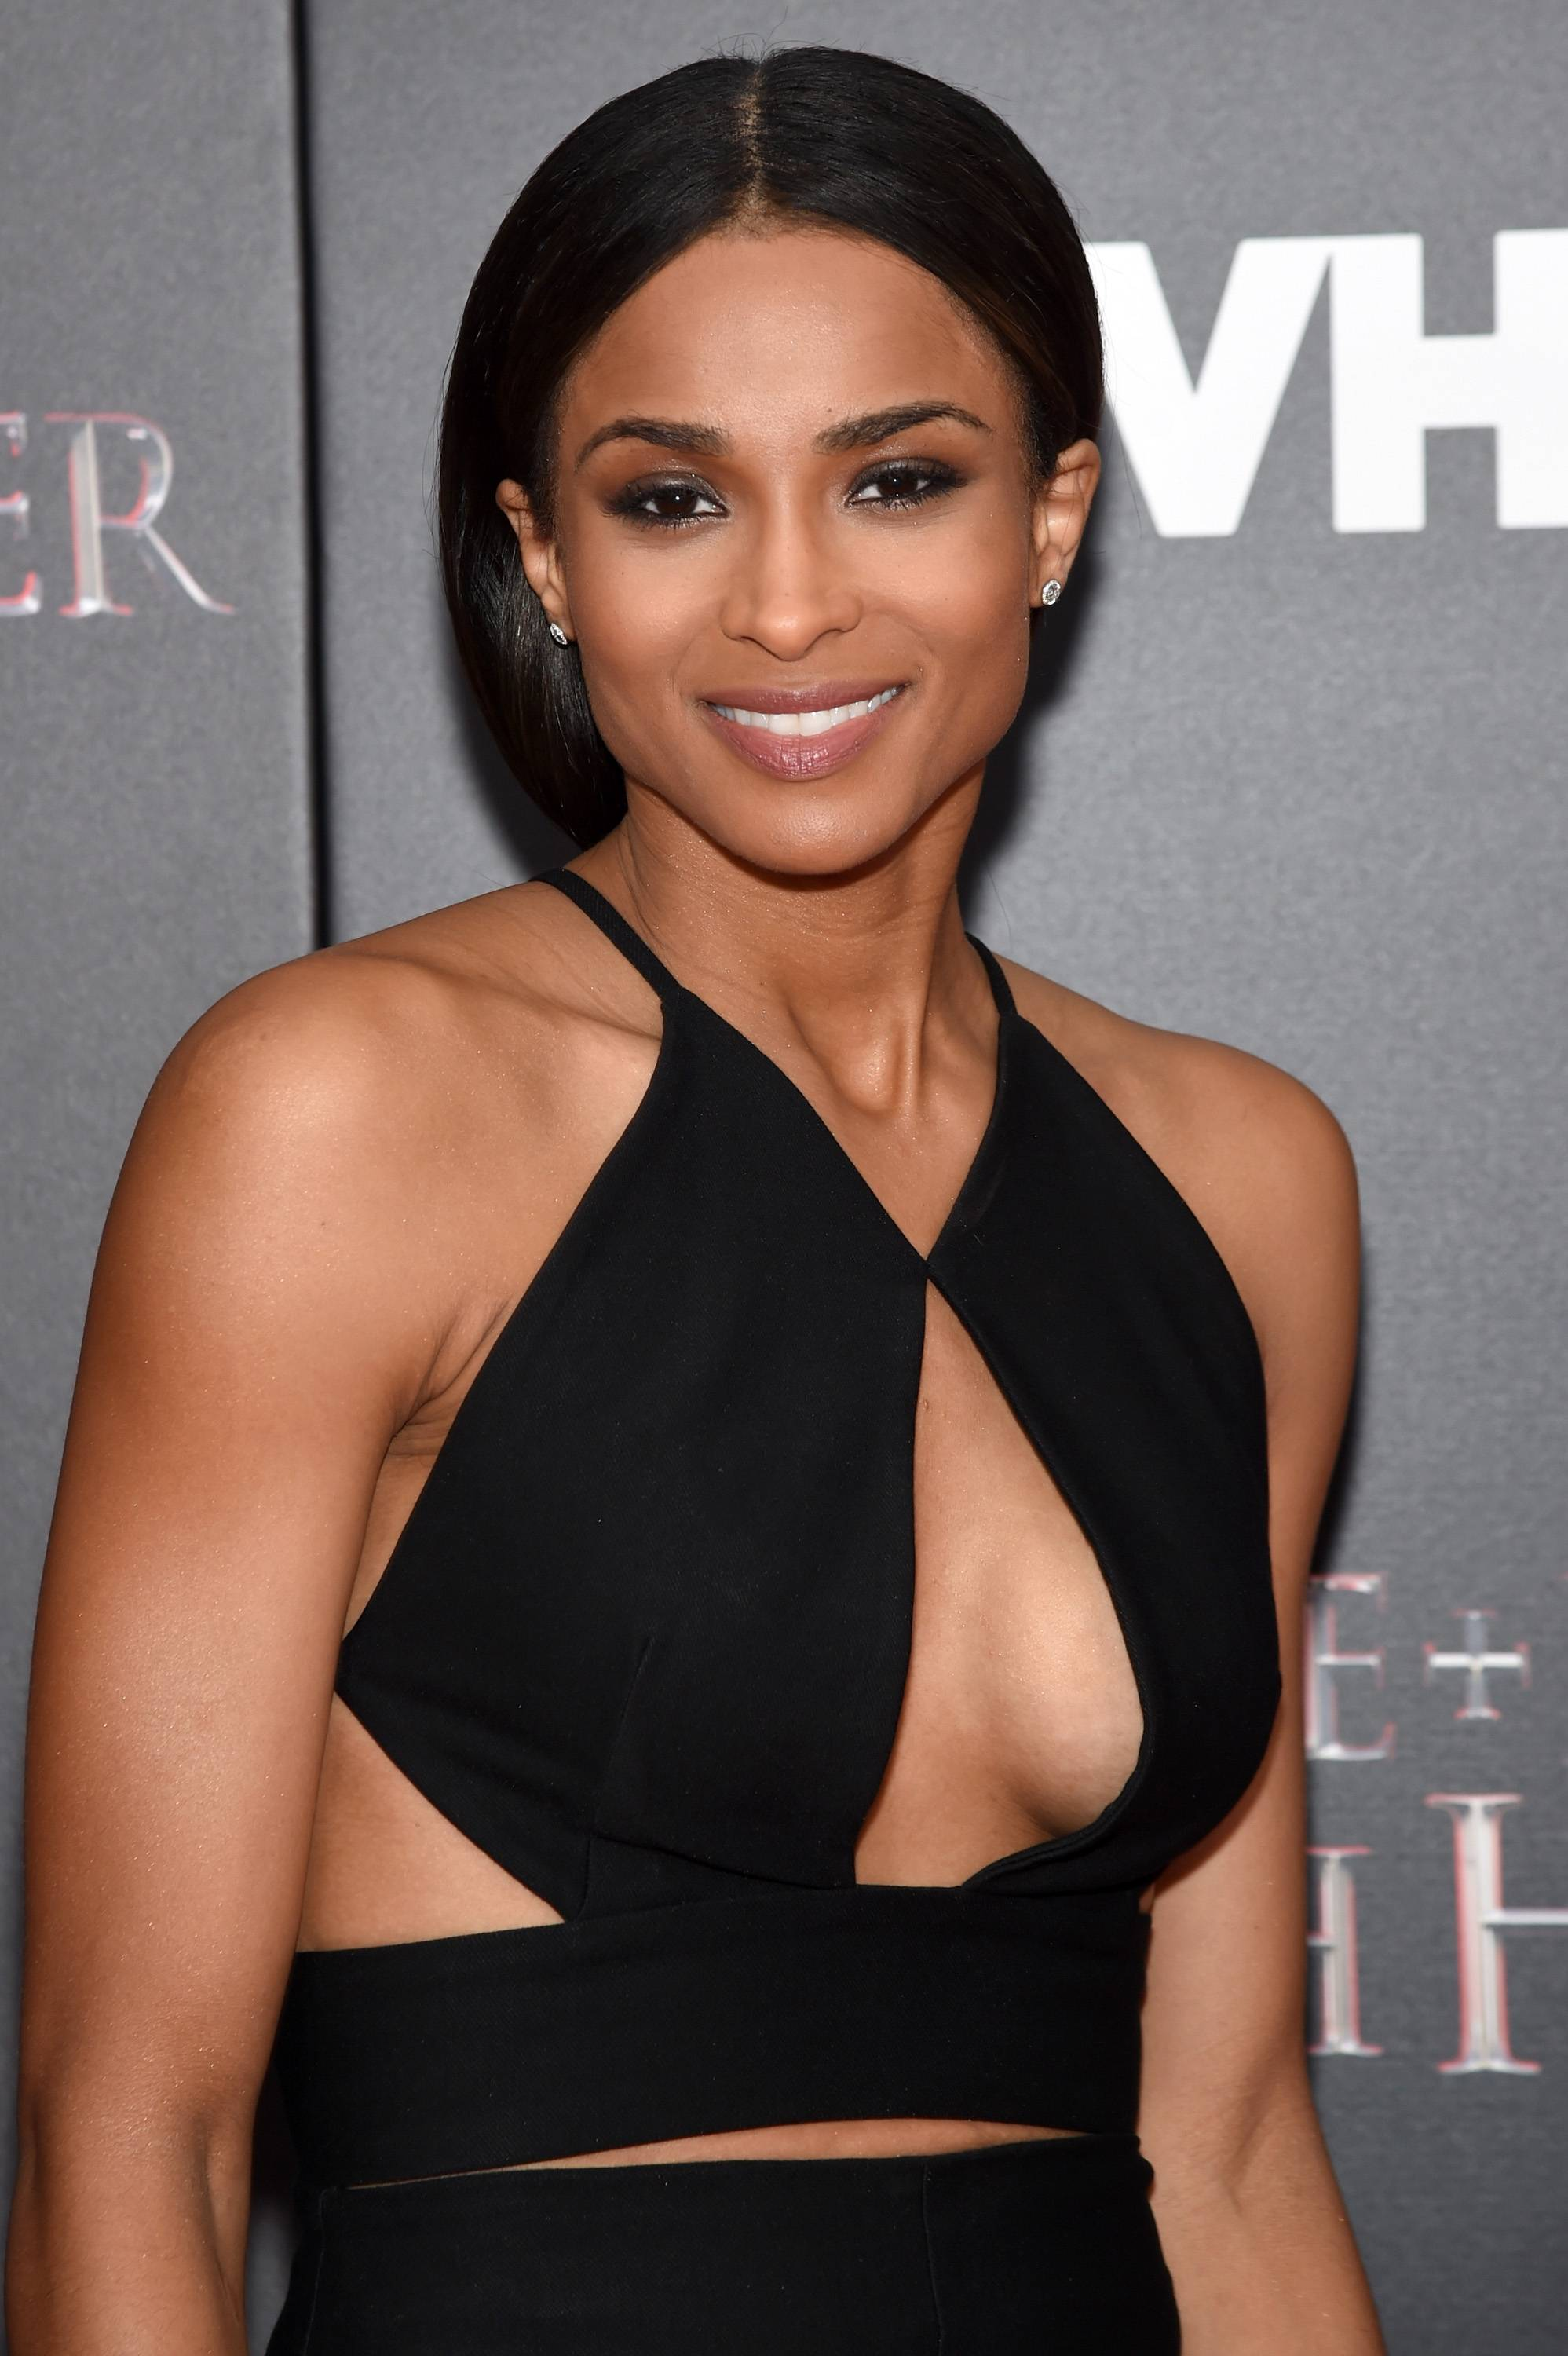 """""""We Don't Fight Over Men"""" - And let's not forget his littlestint with CiCi. After not appearing on her show, Chelsea blamed Ciara for her and 50's demise. Have you seen Ciara? Girl, bye.(Photo: Jamie McCarthy/Getty Images)"""